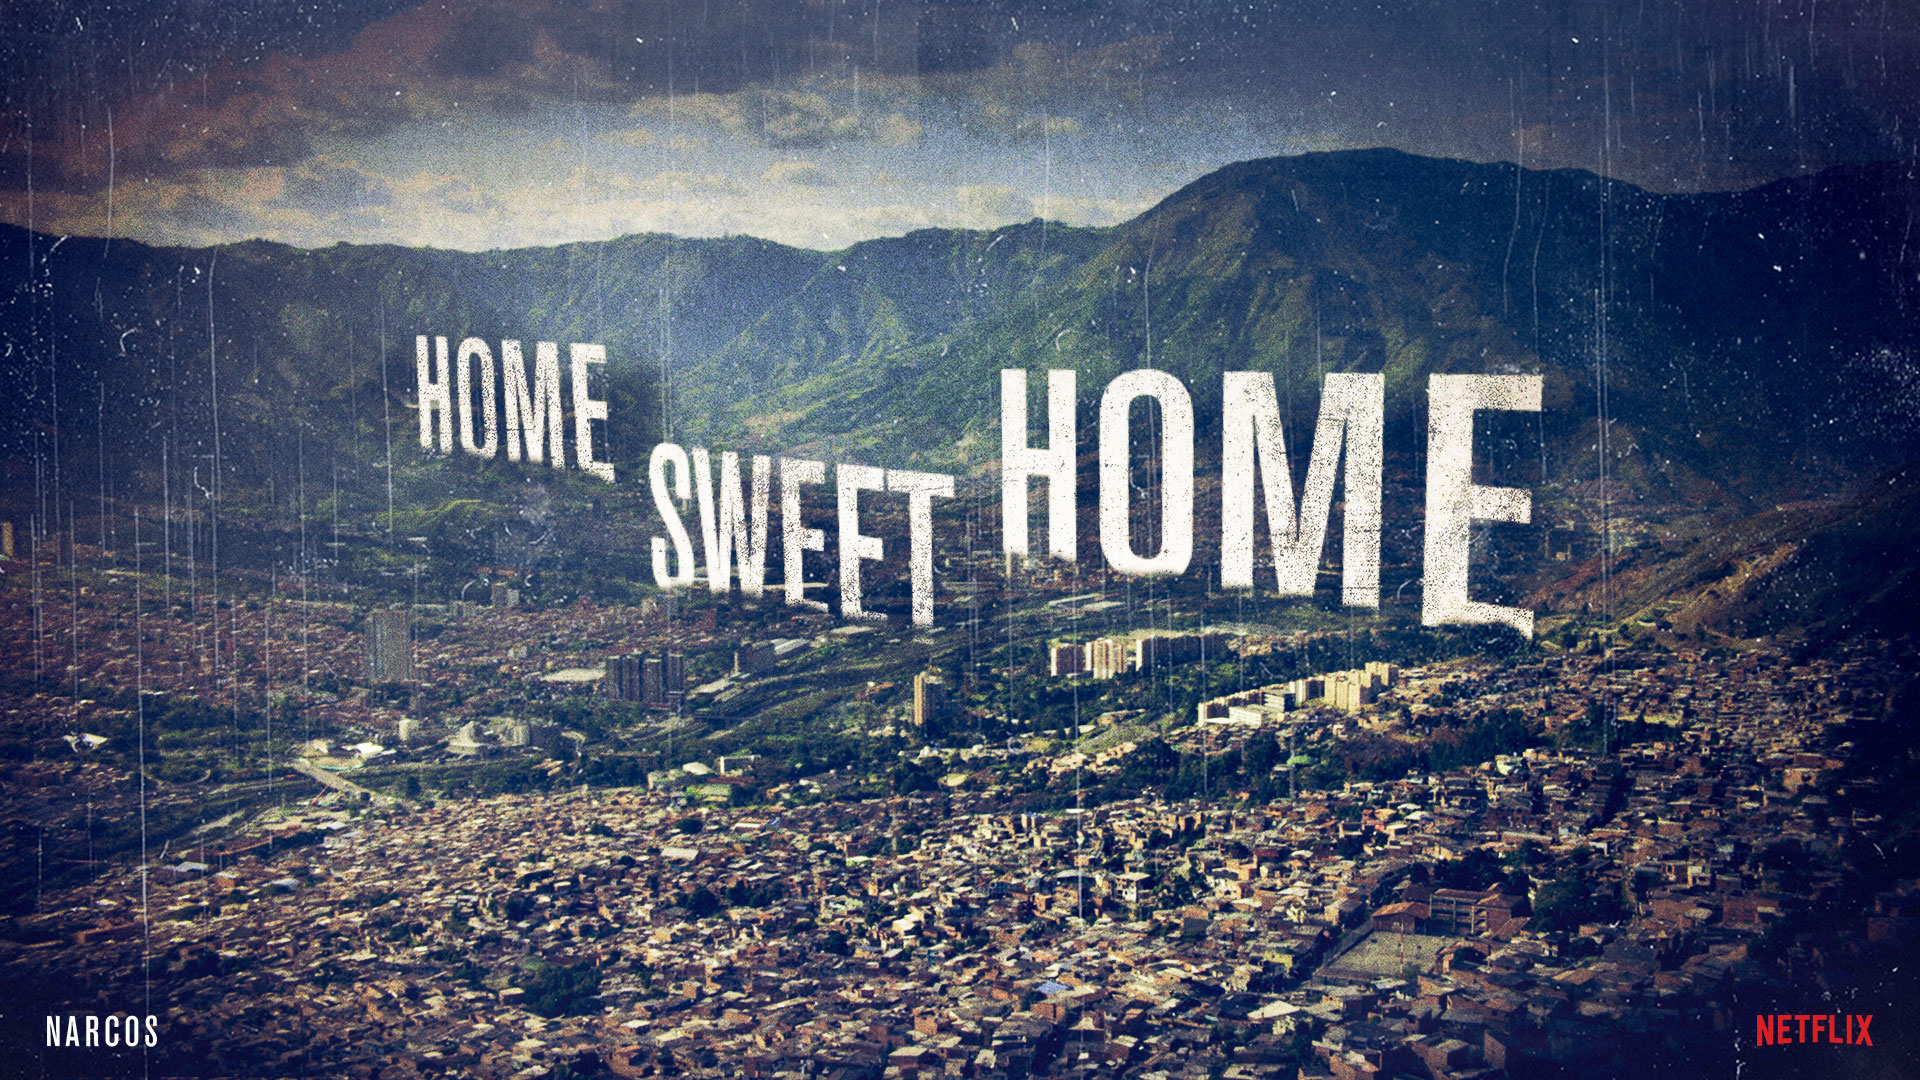 Narcos Home Sweet Home